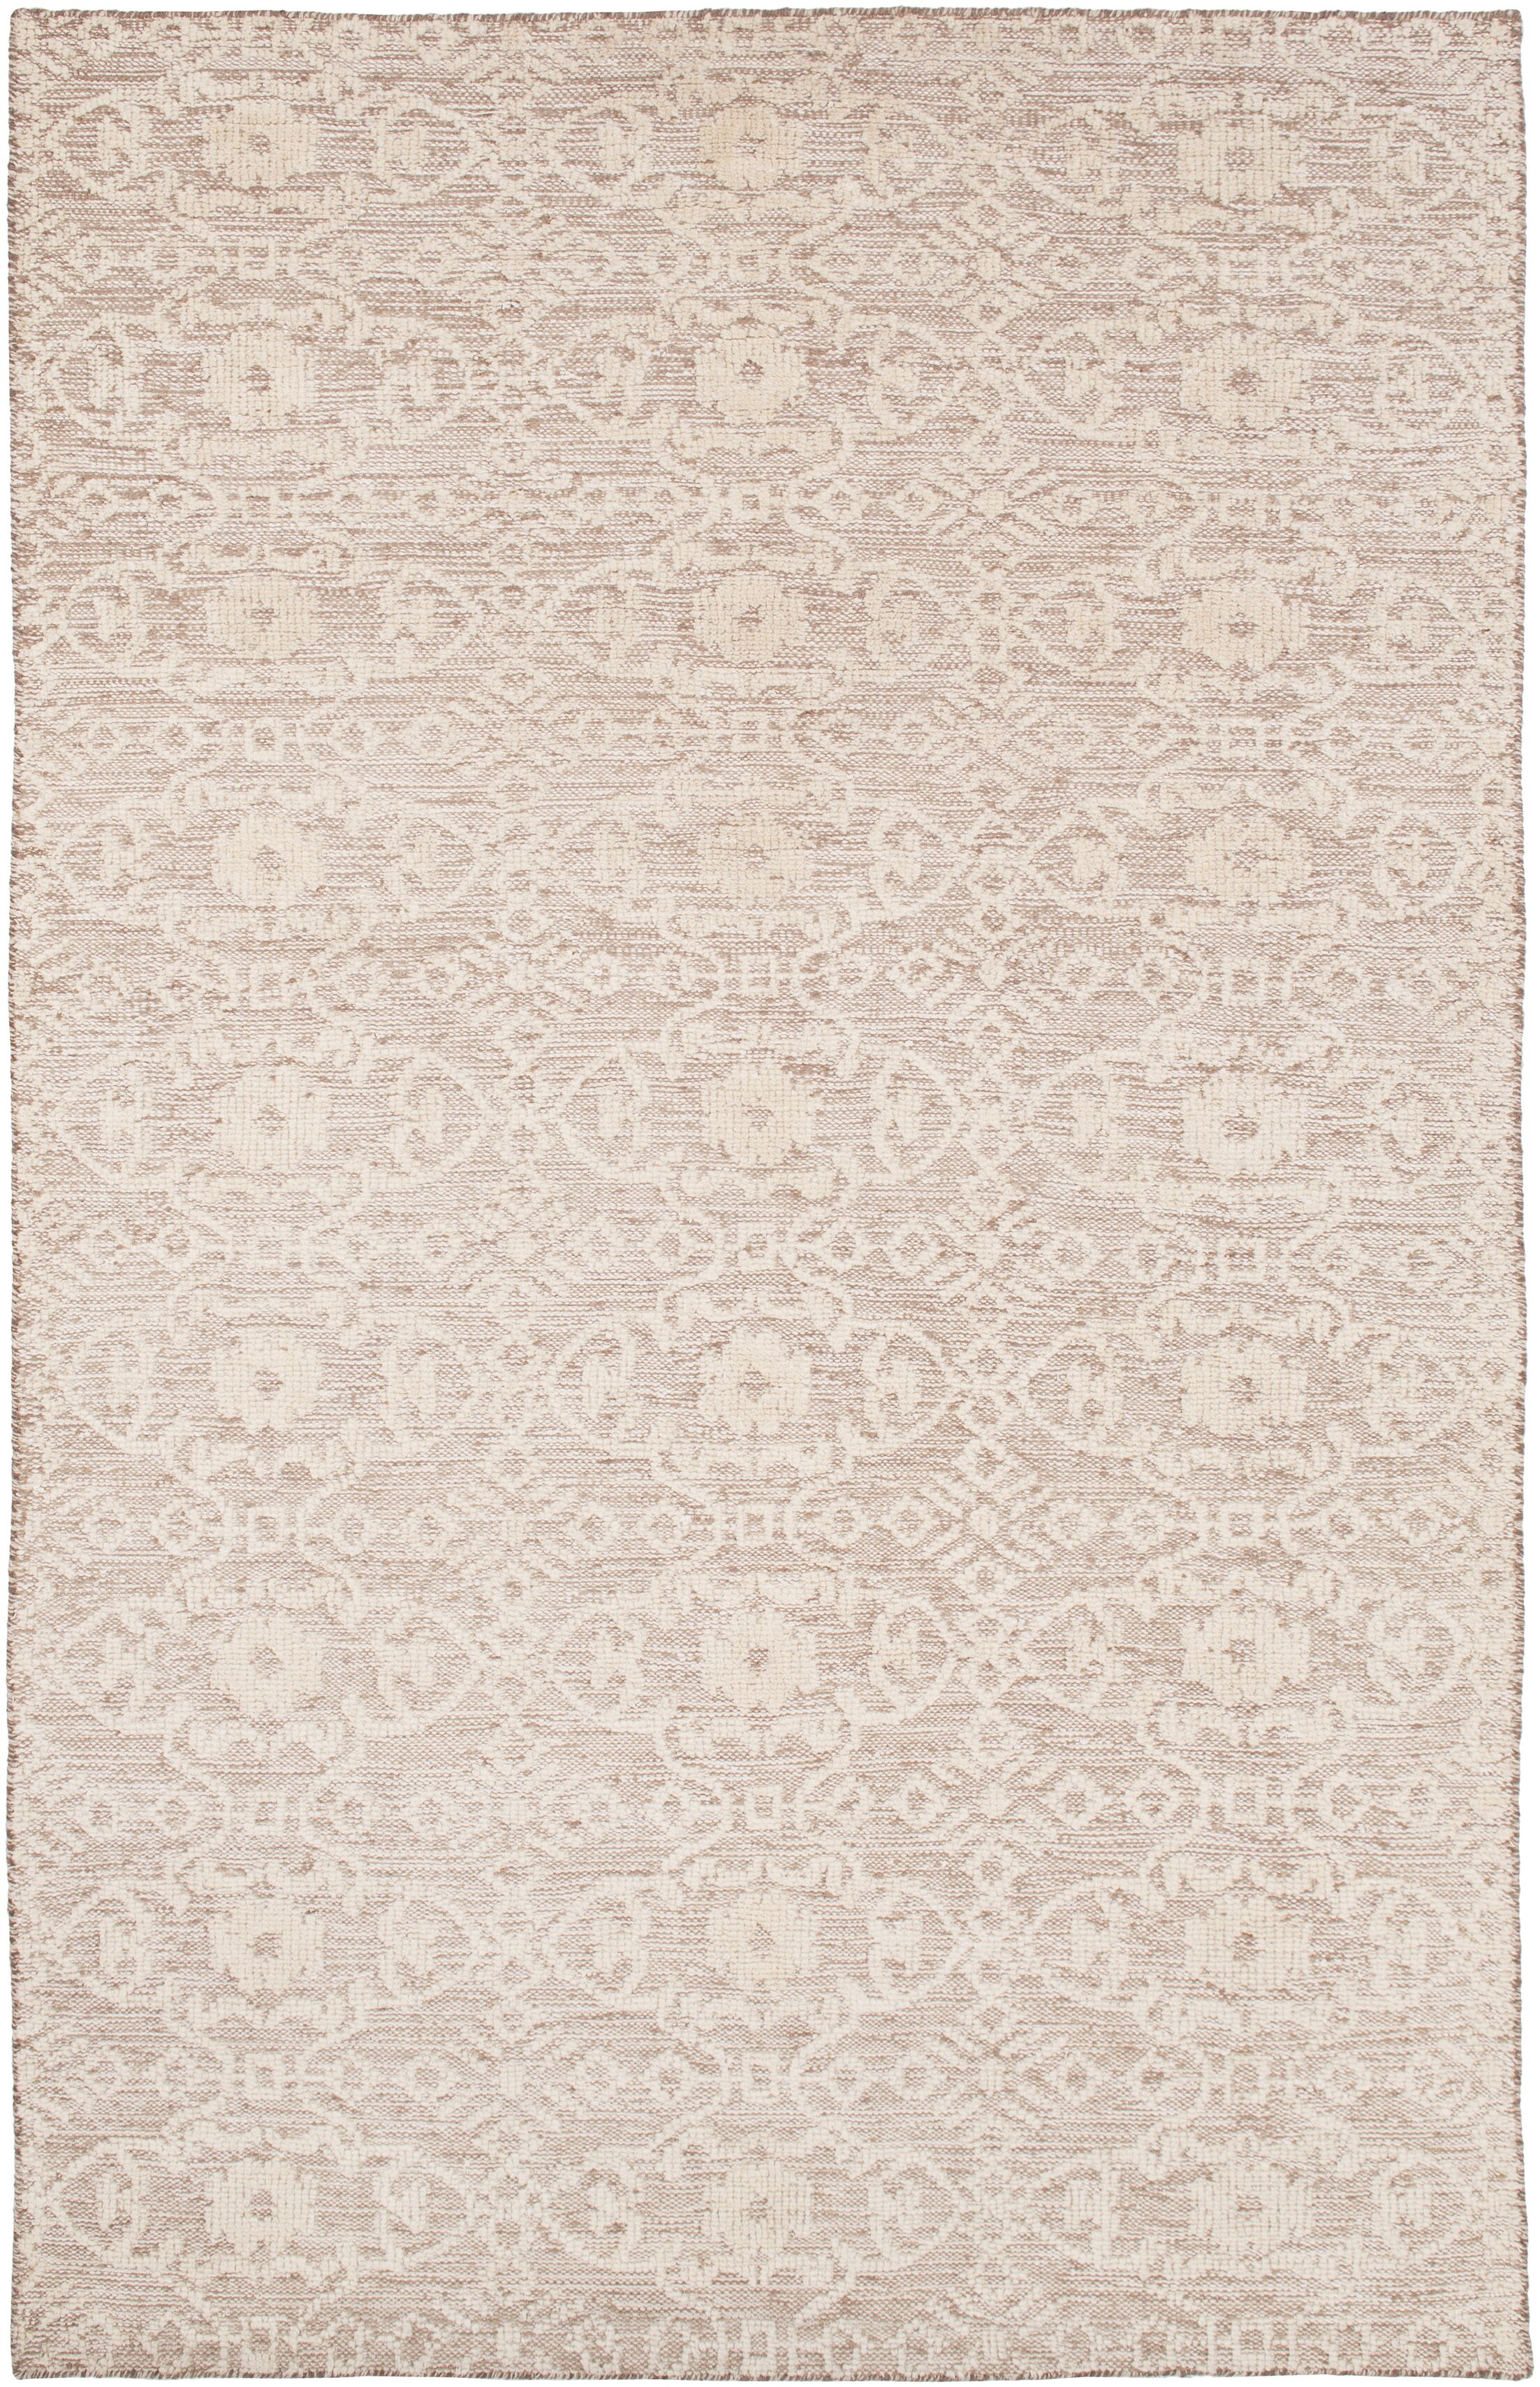 Lejeune Hand Knotted Beige Area Rug Rug Size: Rectangle 9' x 13'